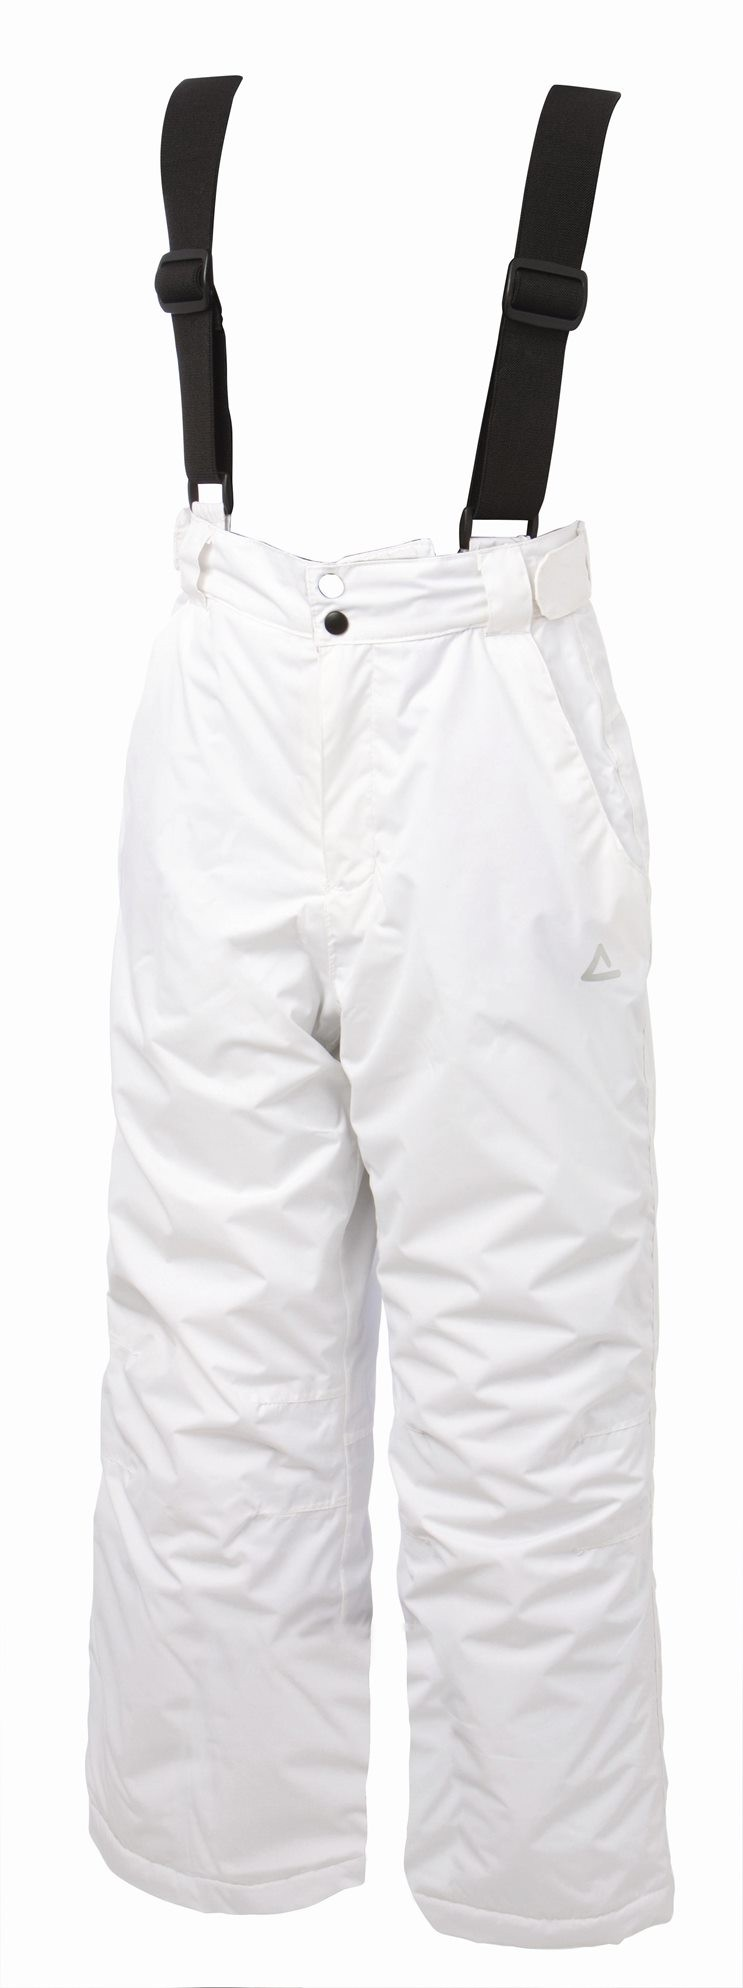 Turnabout Trouser - White